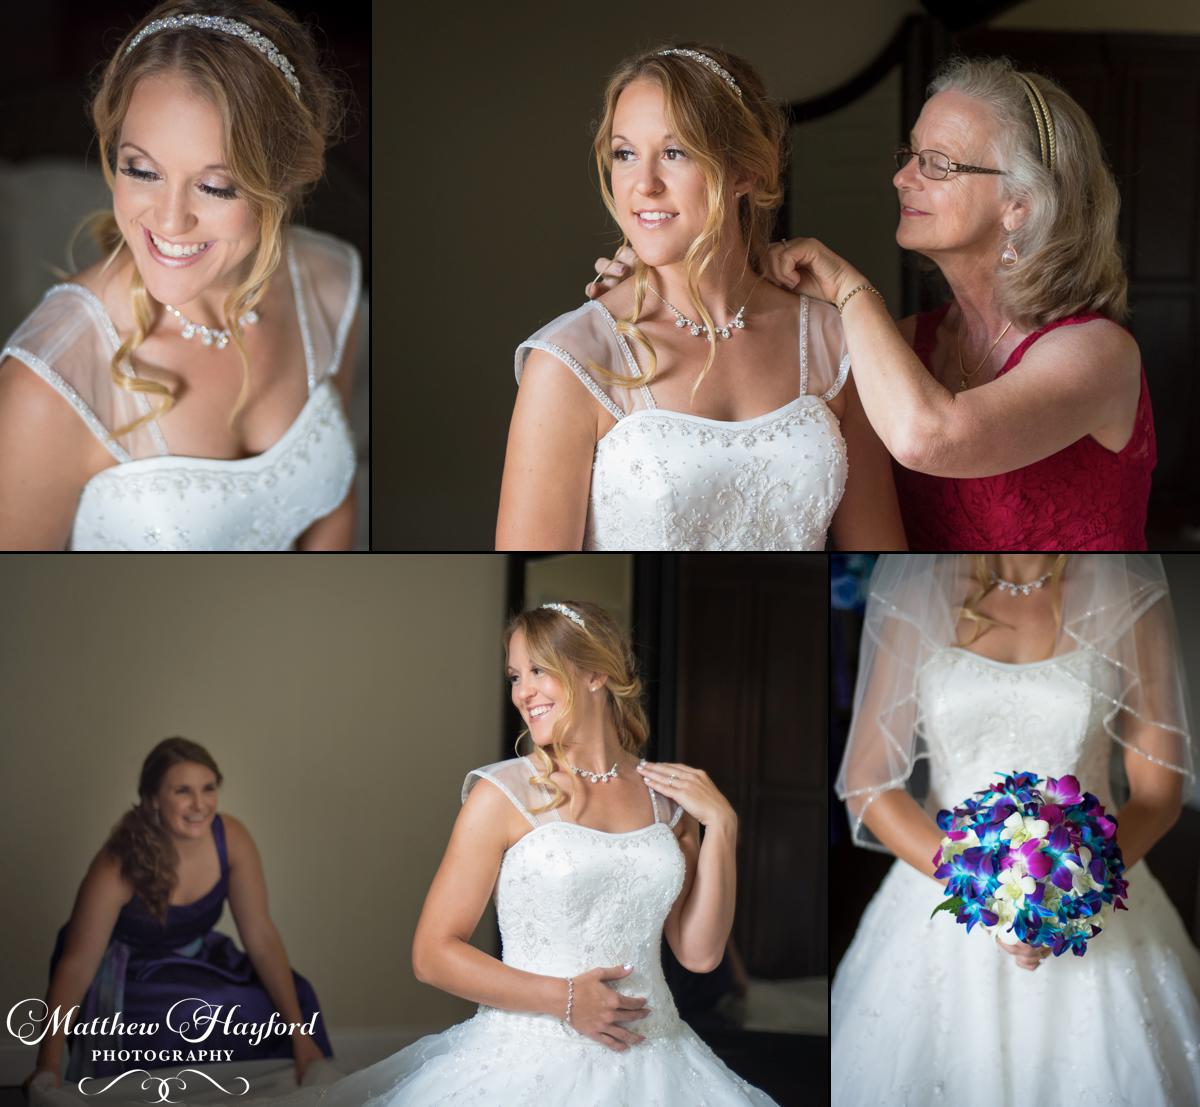 Bridal Portraits at The Royal Crest Room by Matthew Hayford Photography